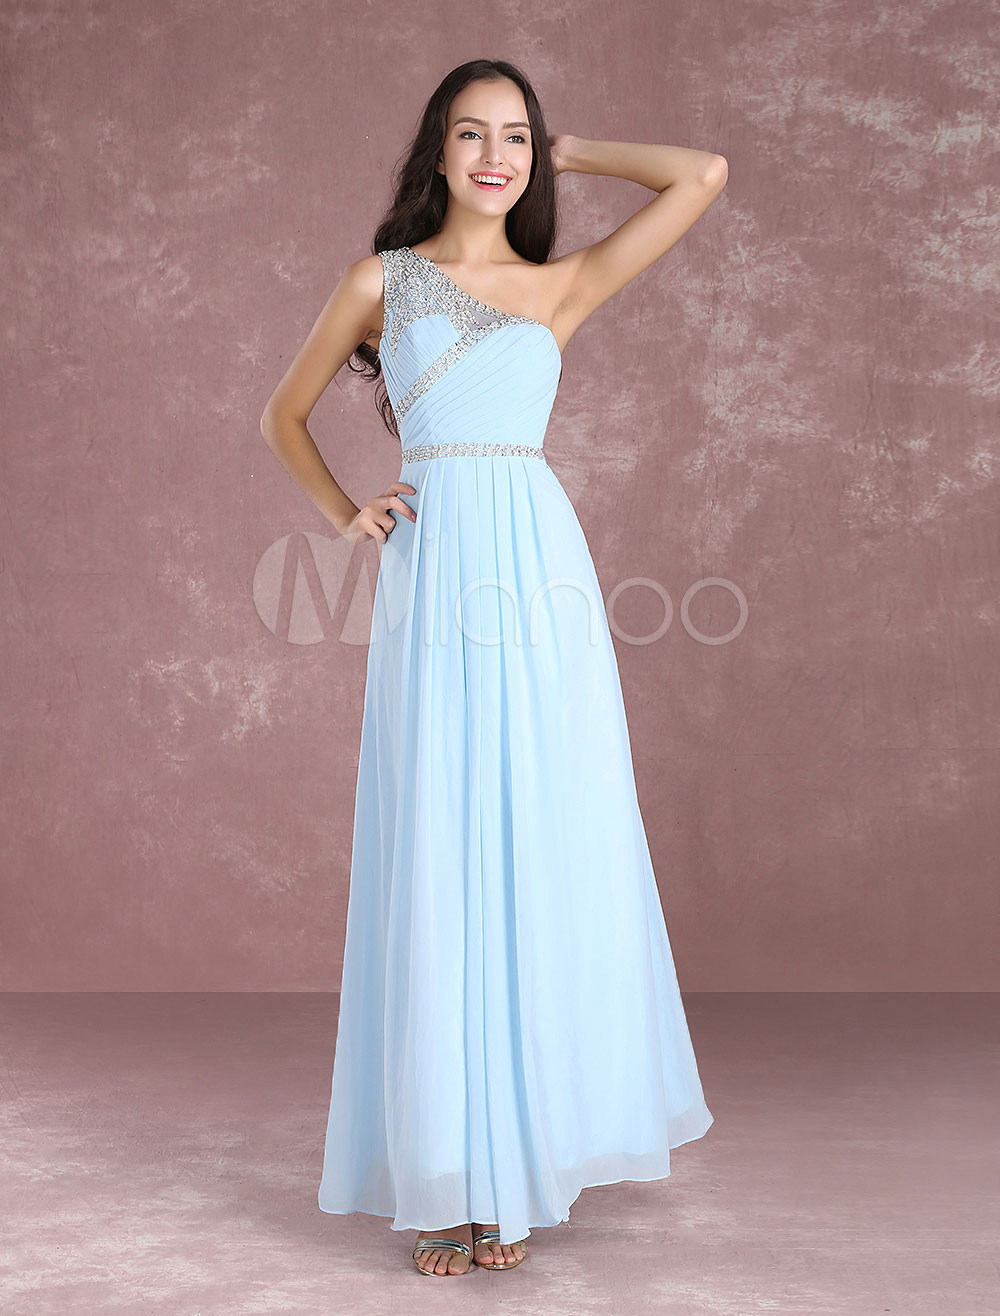 83b8c0555512 ... Long Prom Dresses 2019 Pastel Blue One Shoulder Bridesmaid Dress  Chiffon Beading Floor Length Party Dresses ...